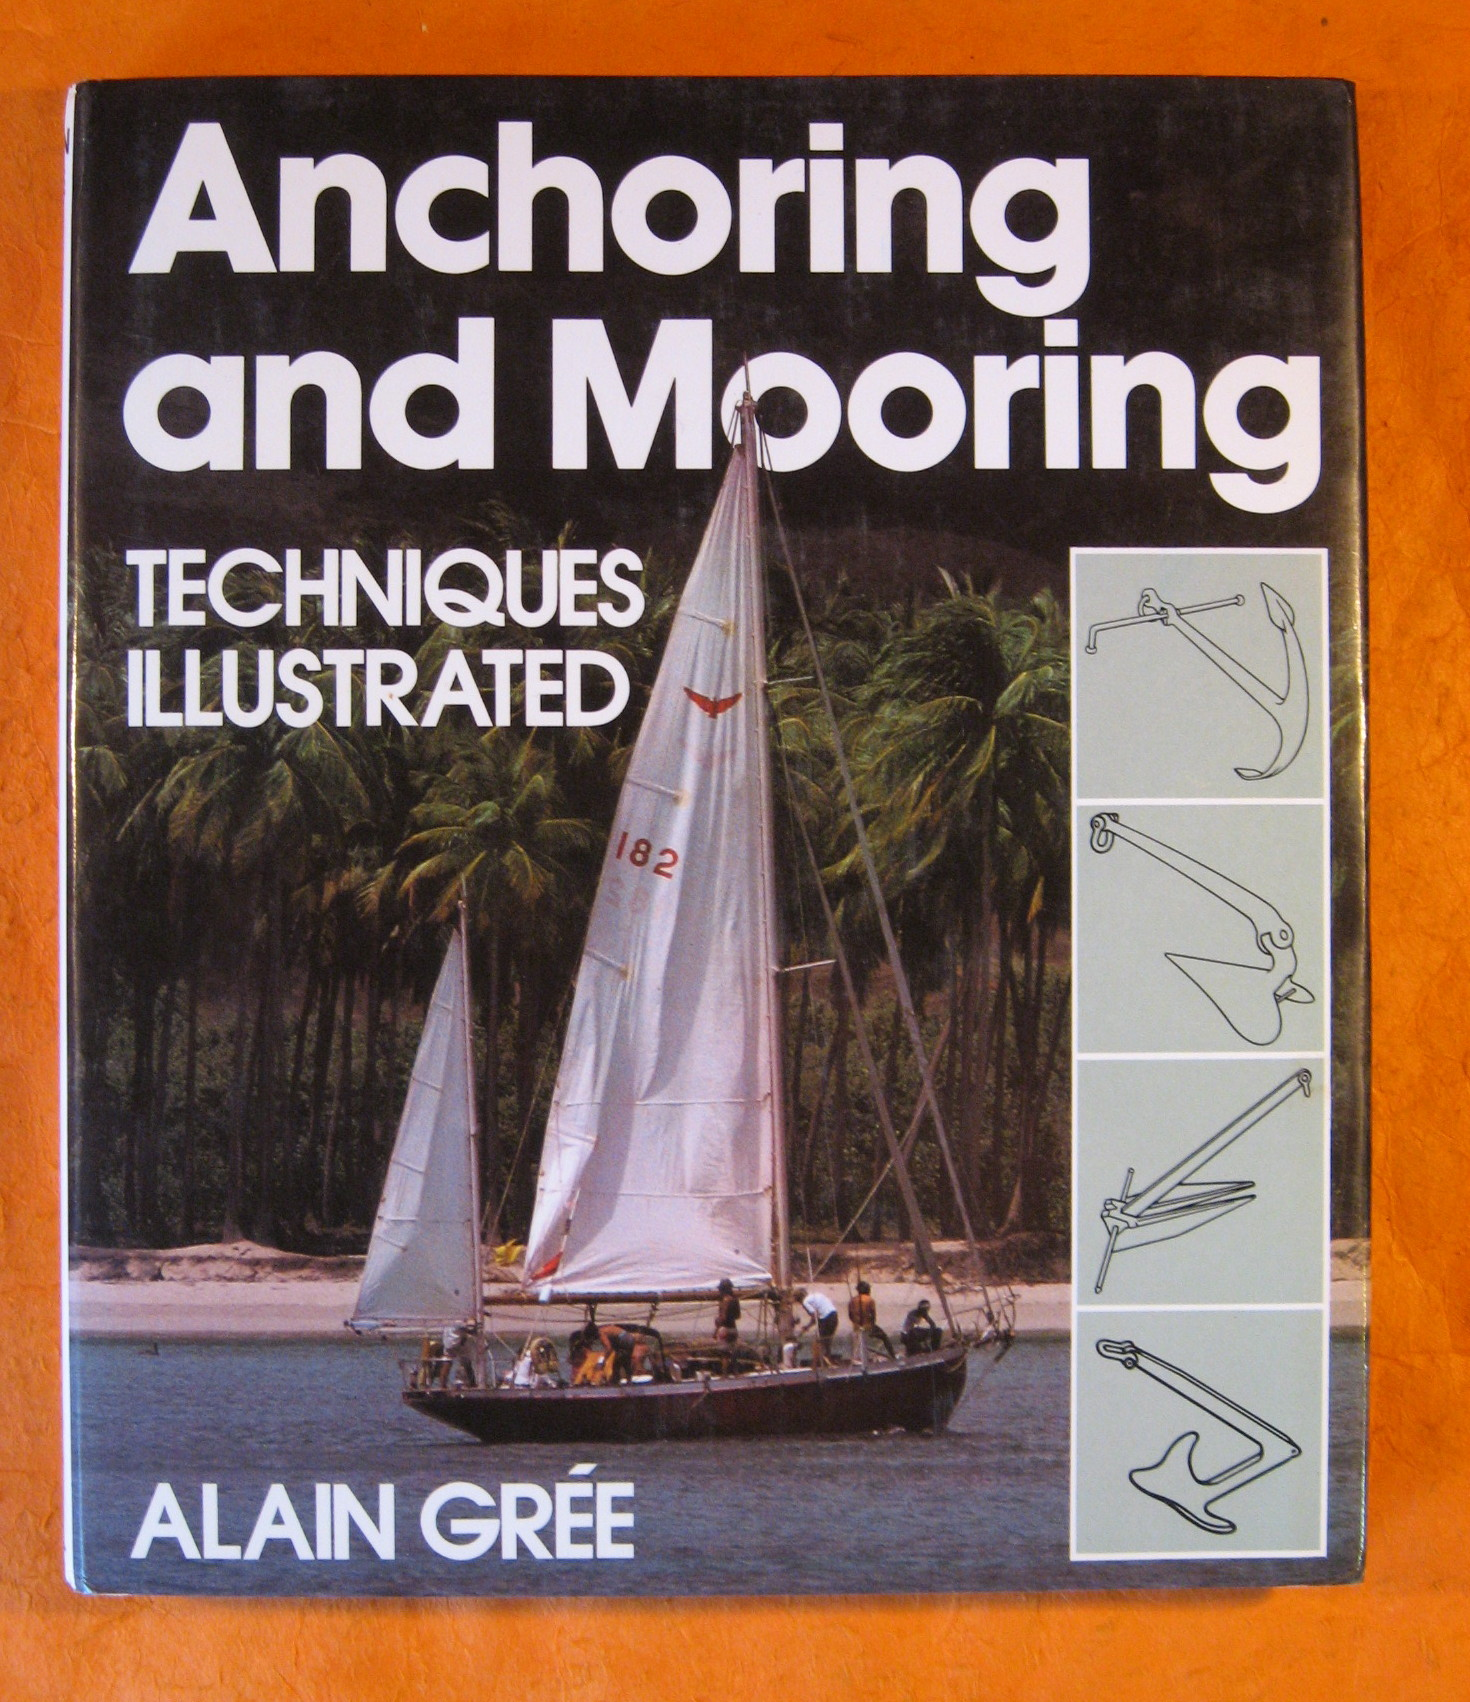 Anchoring and Mooring Techniques Illustrated, Gree, Alain